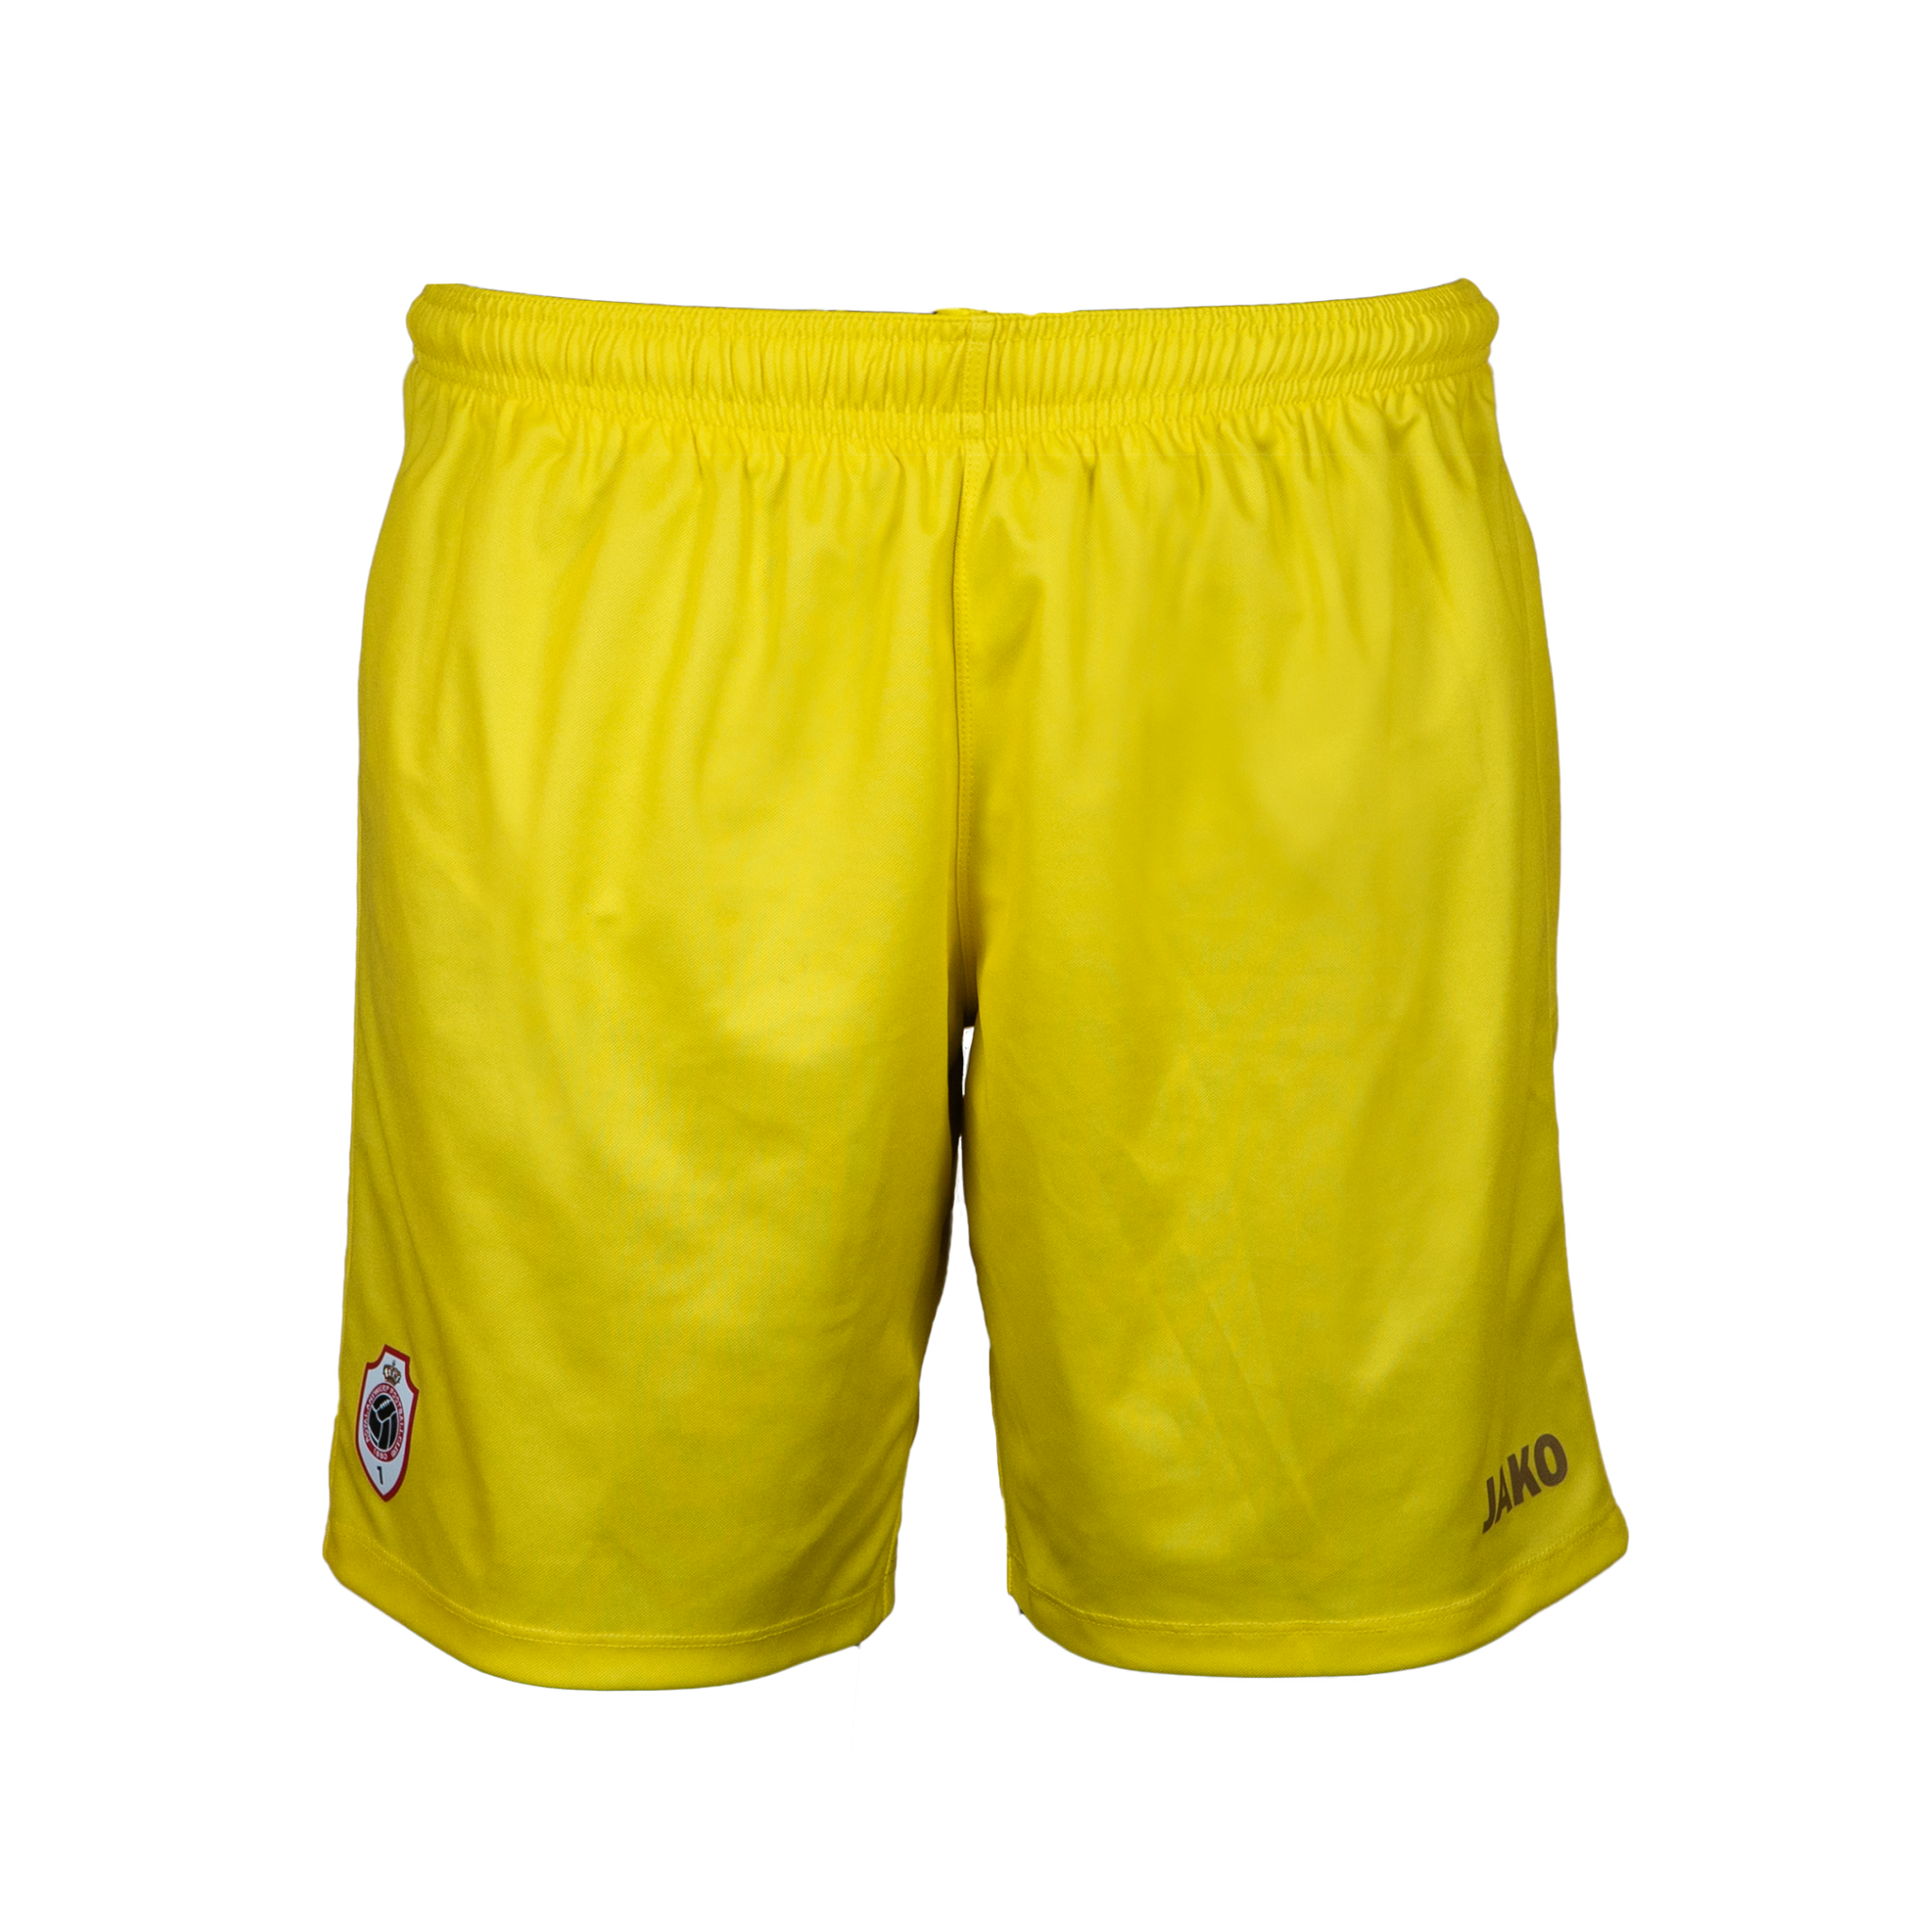 RAFC Keepershort Geel 20/21 Kids-1